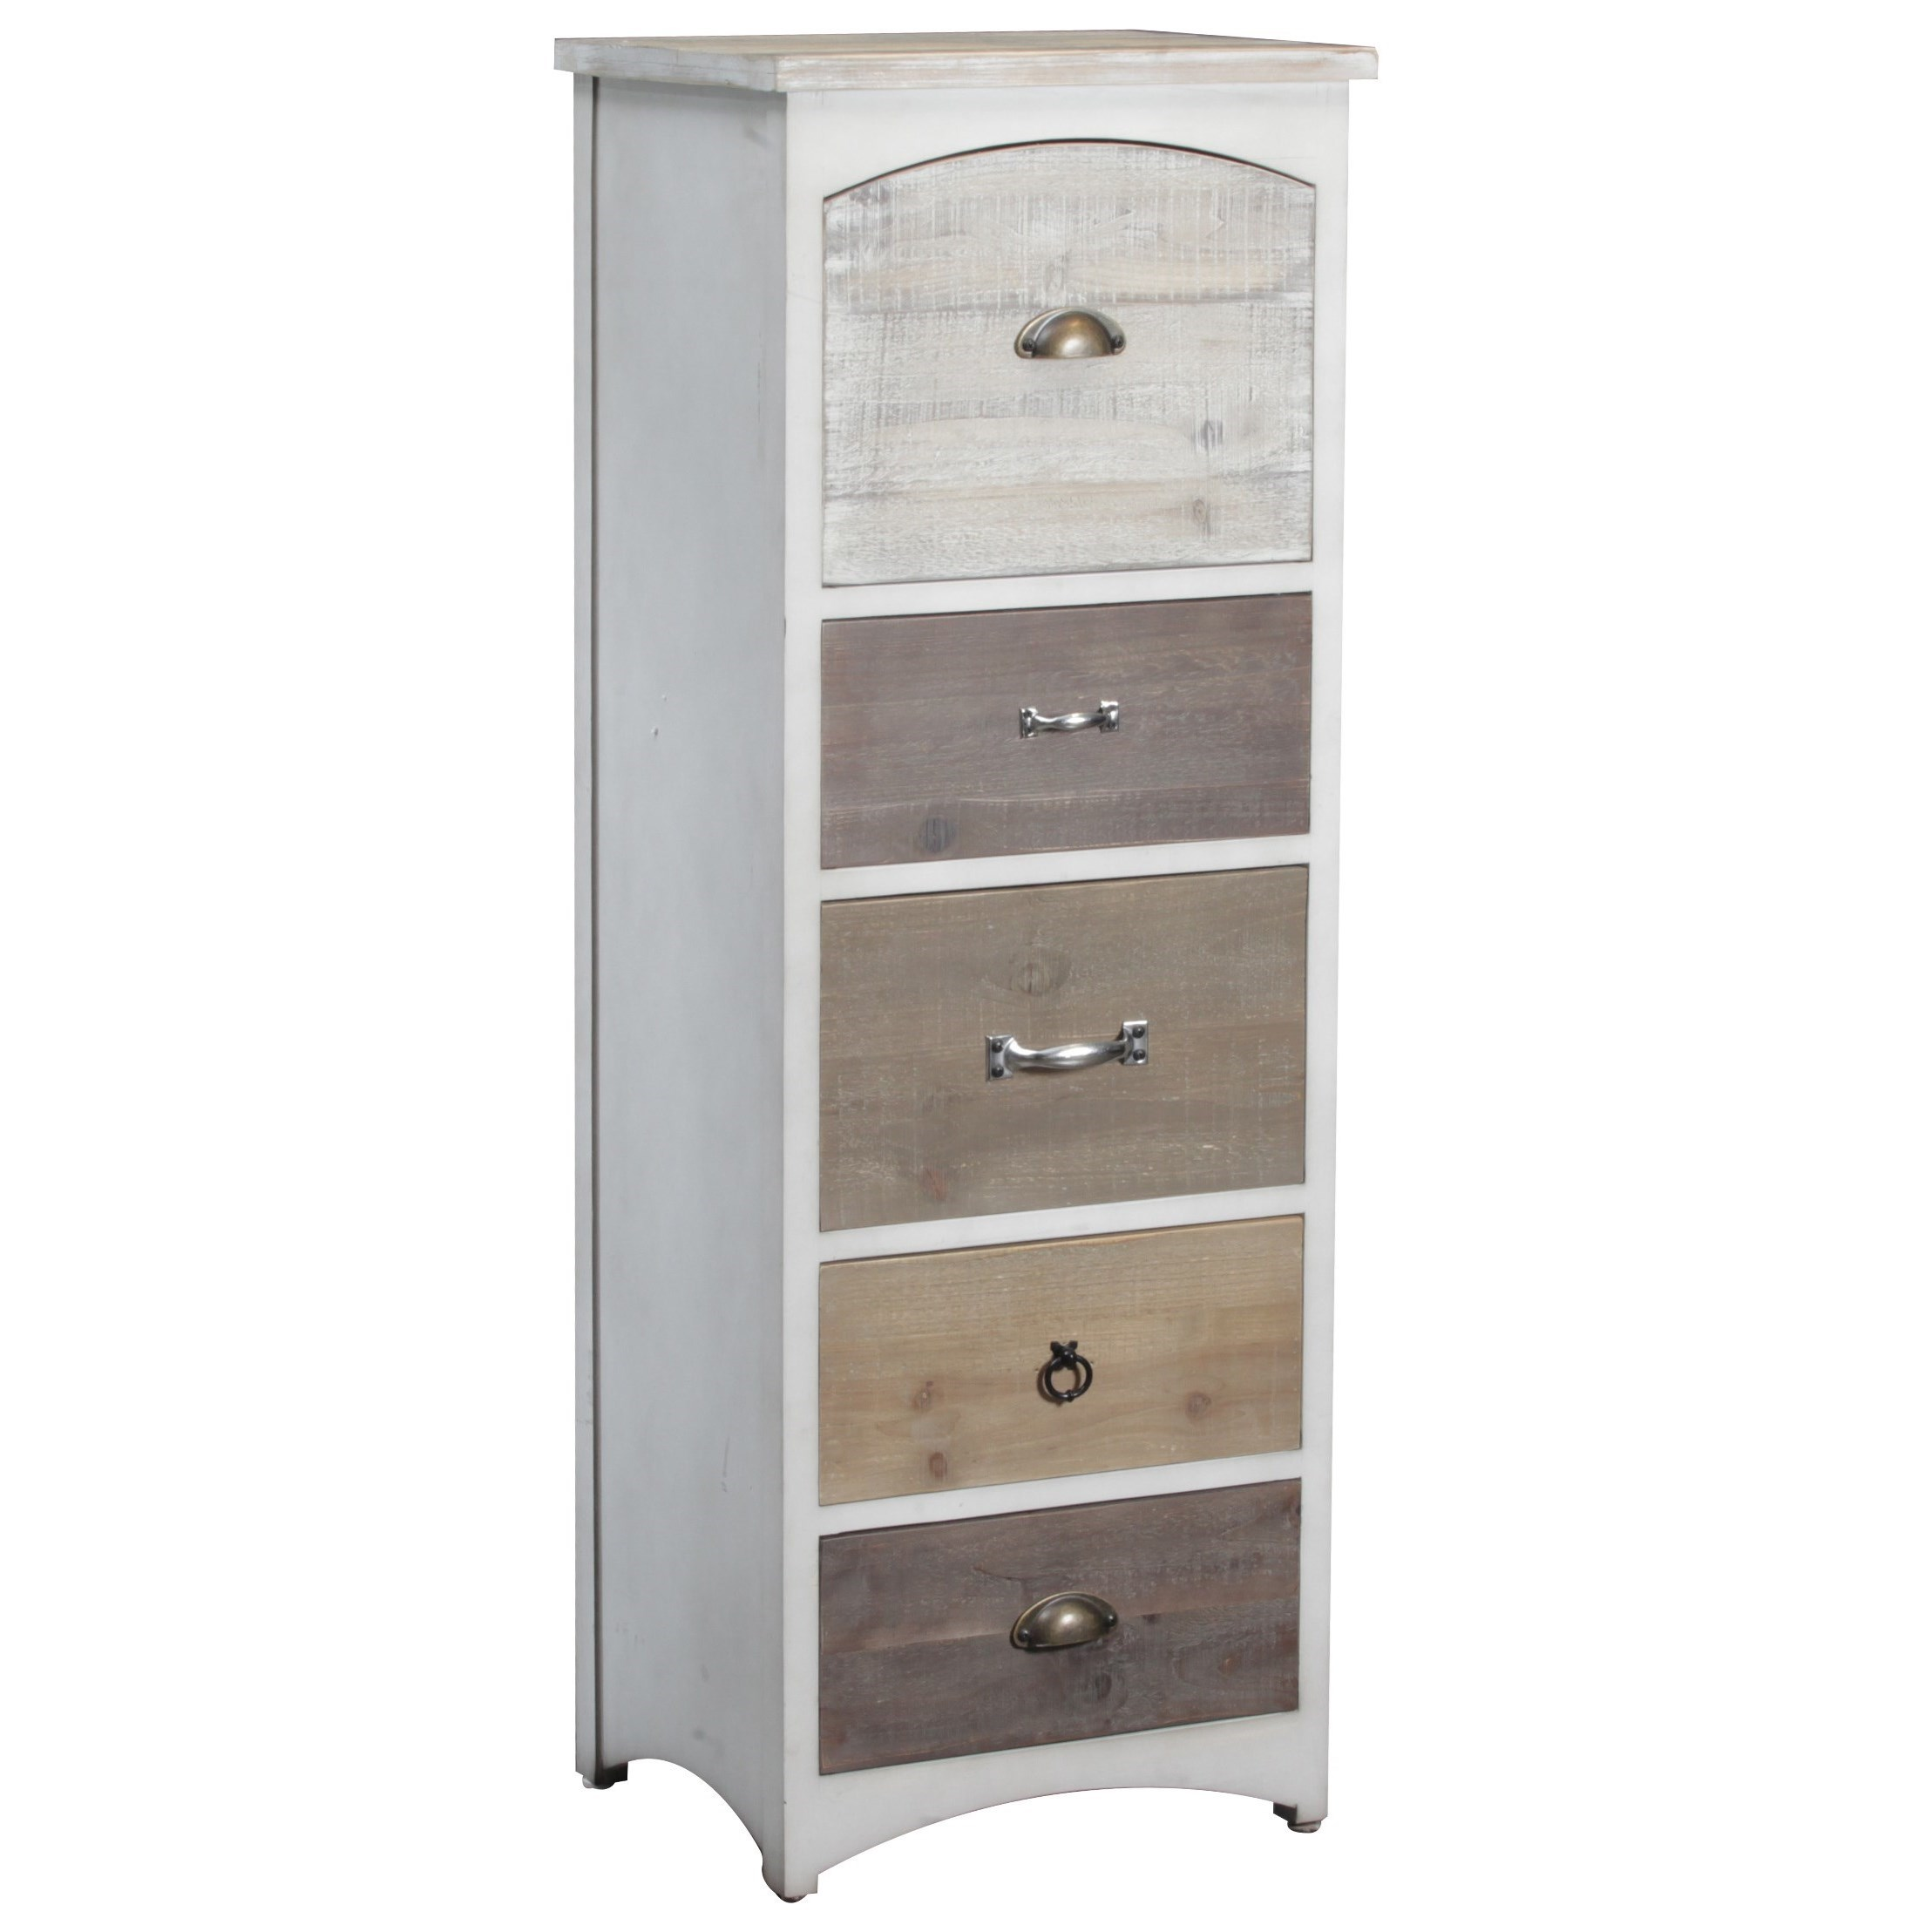 Brighton Brighton Tall Cabinet by Powell at Red Knot